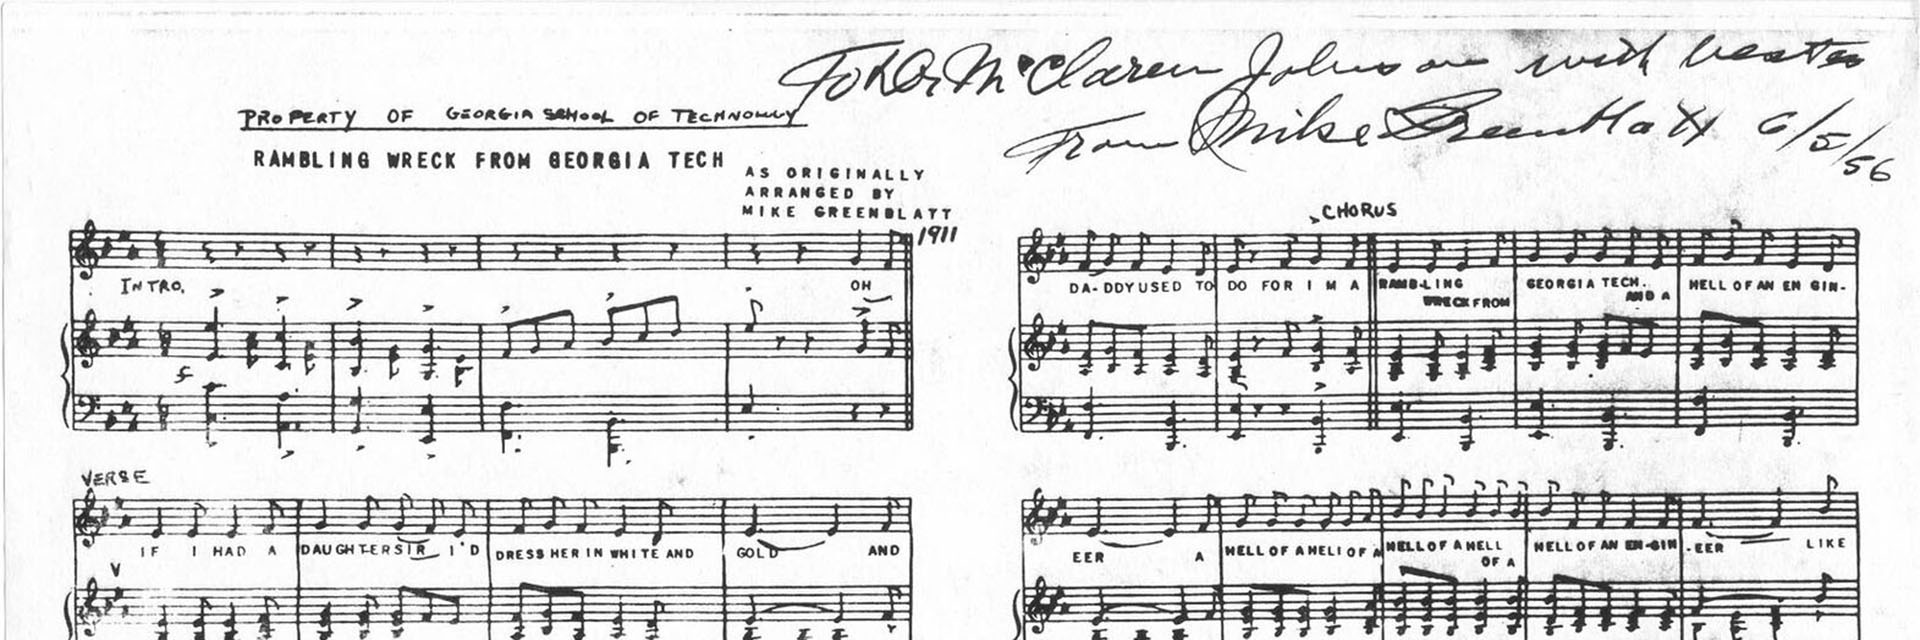 Sheet music of Georgia Tech's Fight Song, Ramblin' Wreck, as it was originally composed.